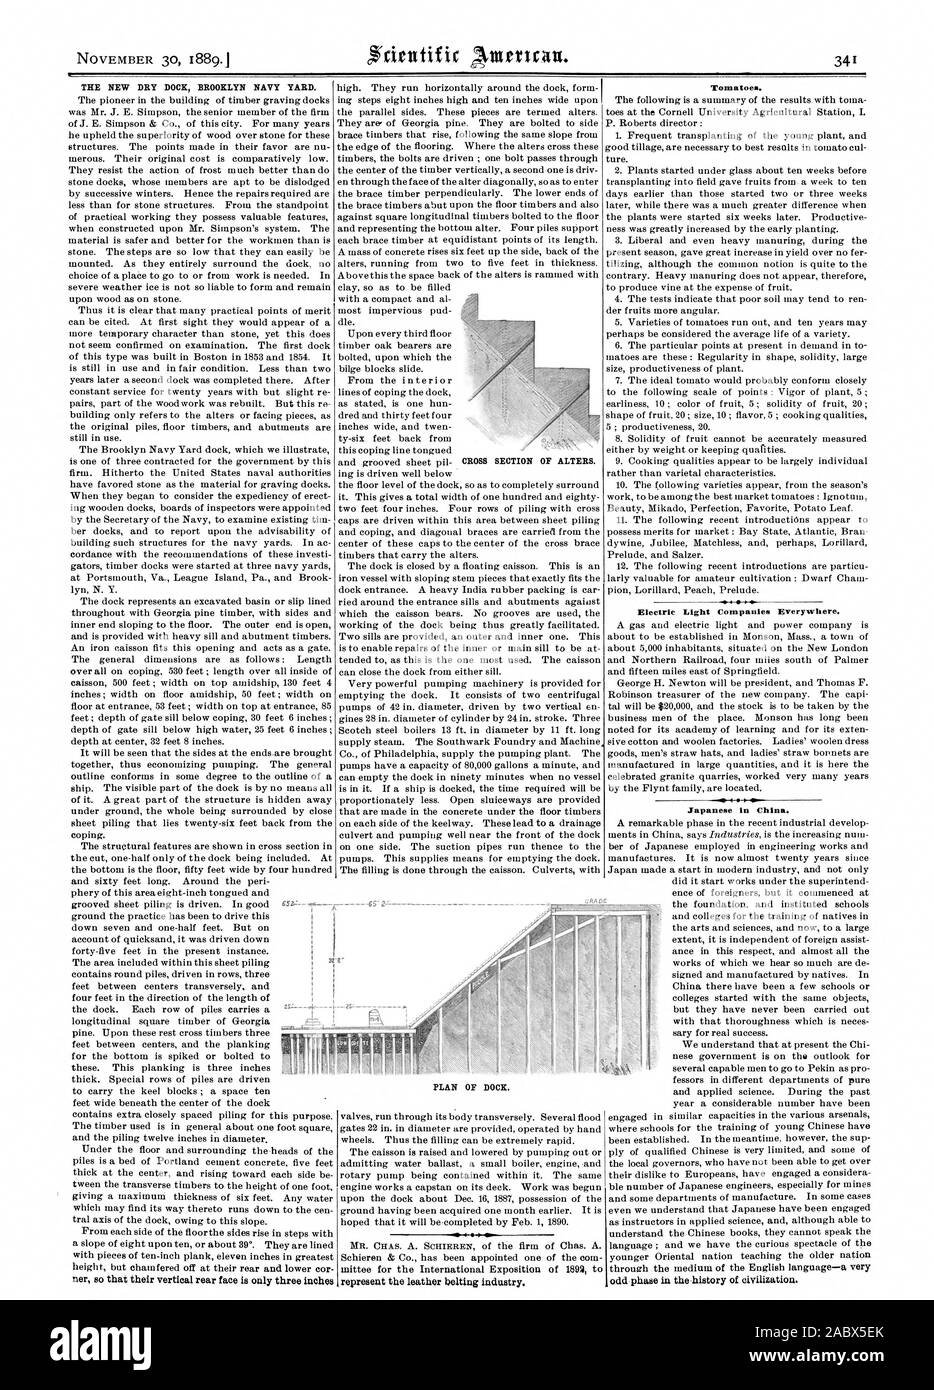 THE NEW DRY DOCK BROOKLYN NAVY YARD. Tomatoes. Electric Light Companies Everywhere. Japanese in China. CROSS SECTION OF ALTERS. PLAN OF DOCK., scientific american, 1889-11-30 Stock Photo